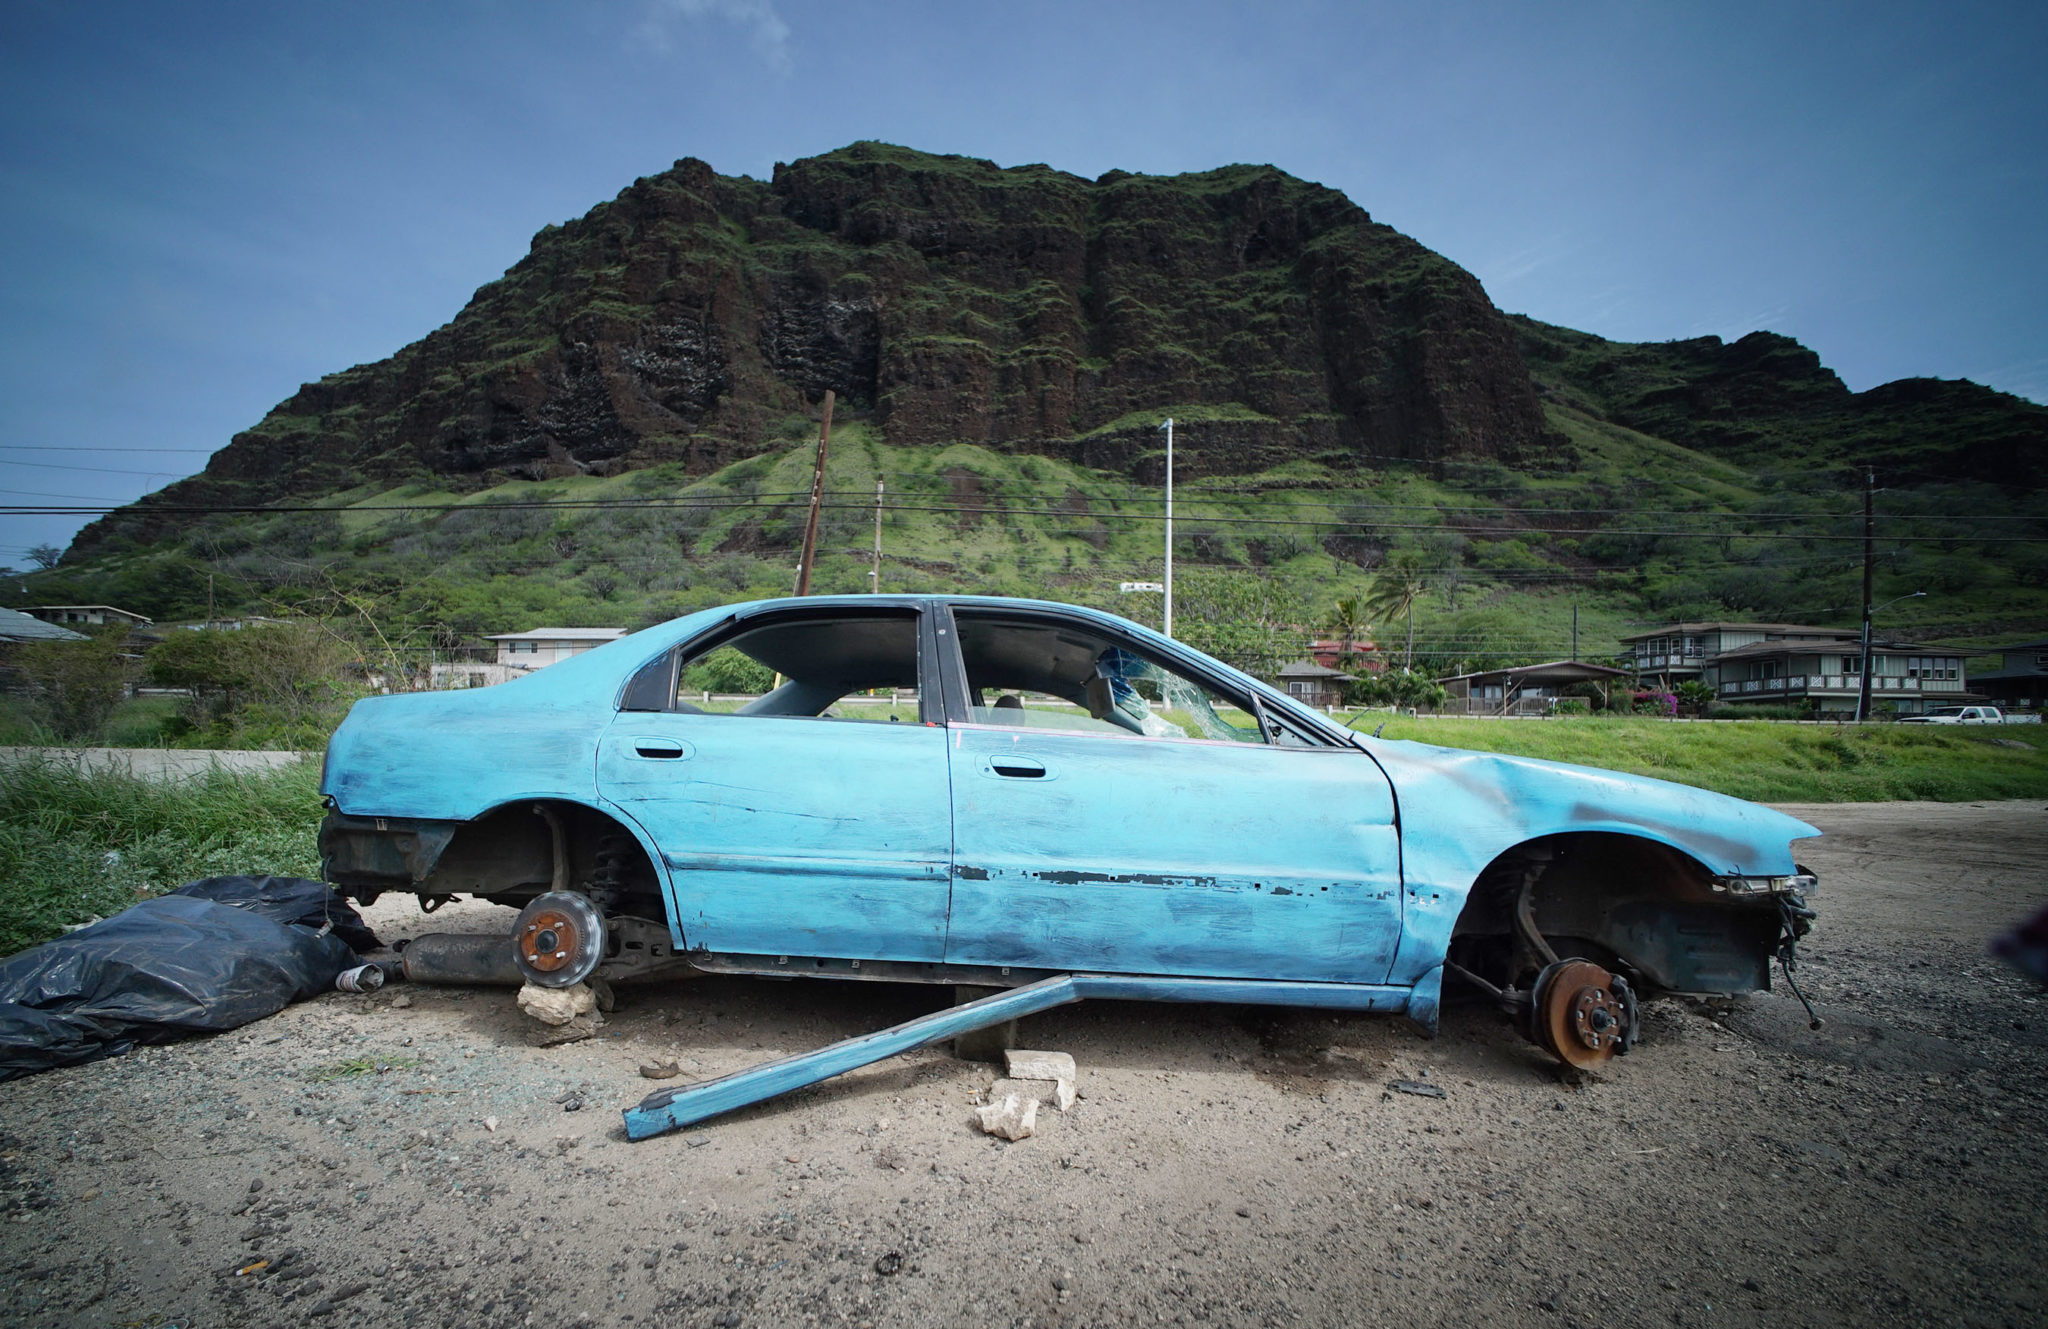 <p>Oahu&#8217;s west side is no stranger to the unsightliness, which includes this vehicle near the Farrington Highway in Nanakuli with Puu Ohulu in the background.</p>